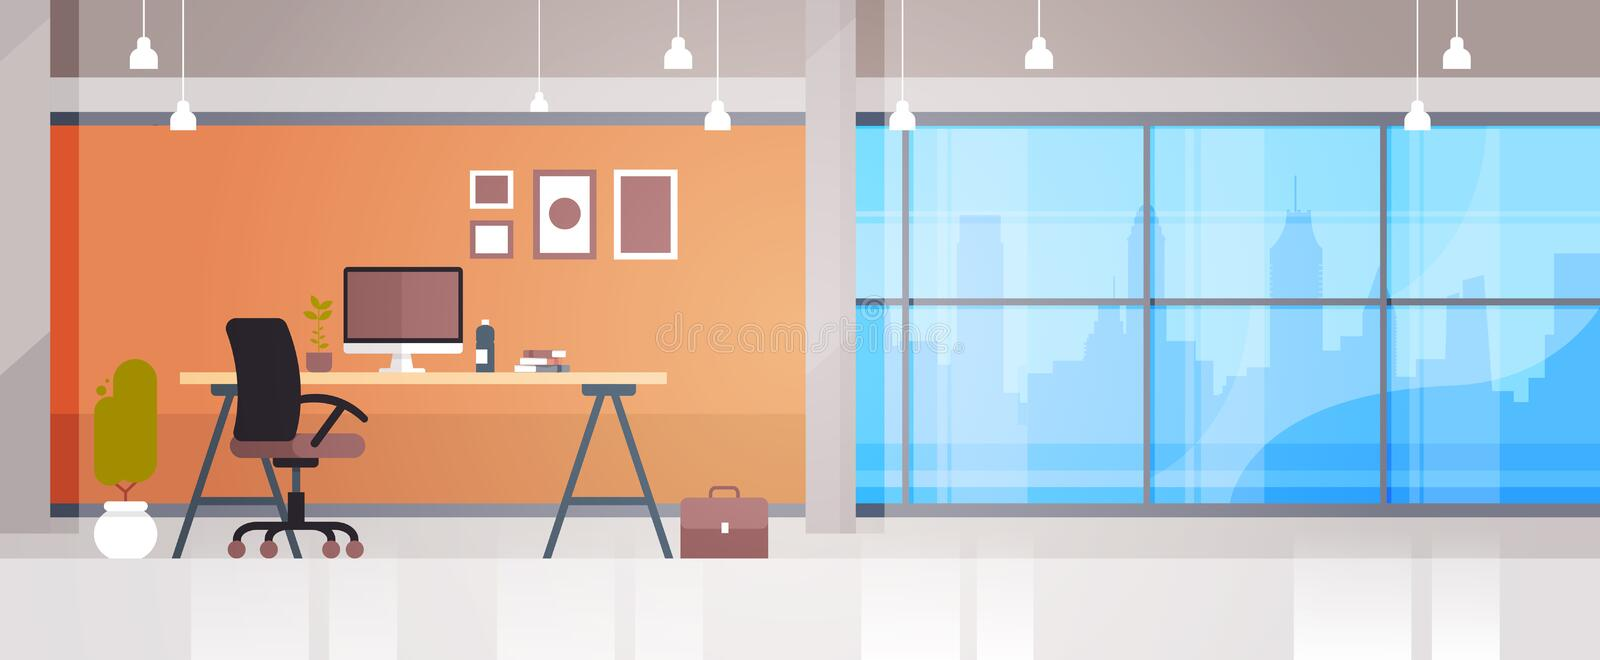 Empty Workplace Office Desk With Desktop Computer Workspace Interior Concept stock illustration